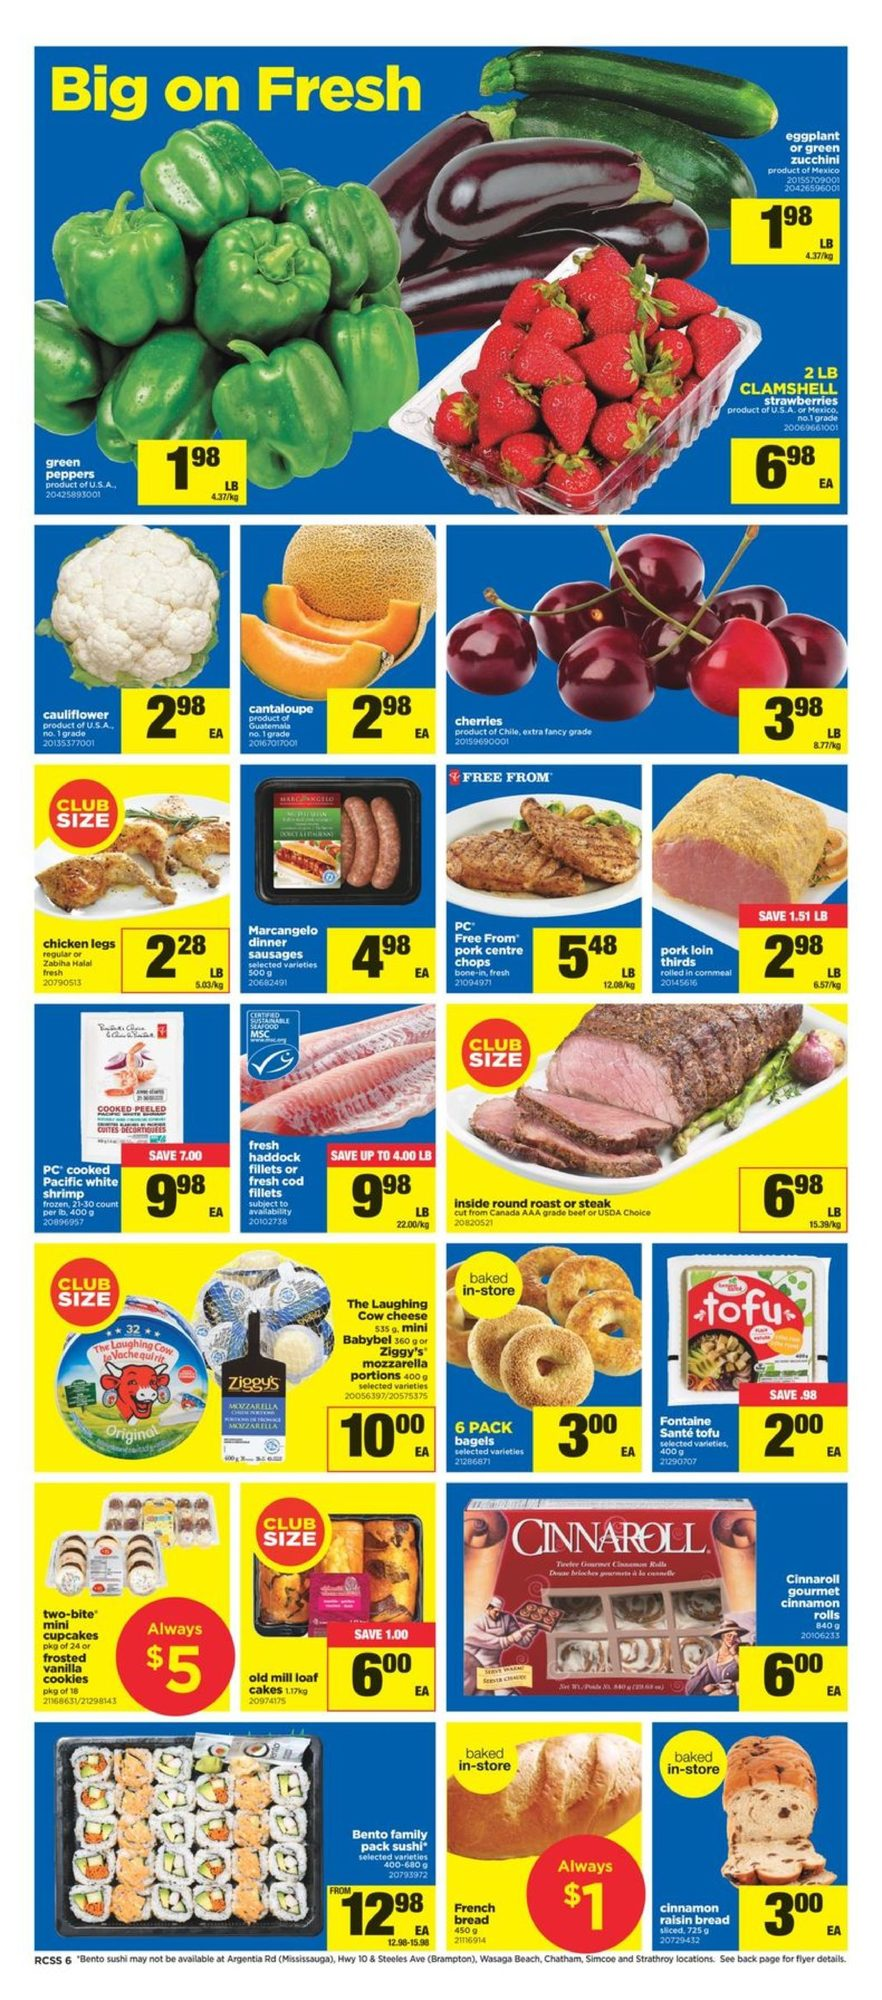 Real Canadian Superstore - Weekly Flyer Specials - Page 6